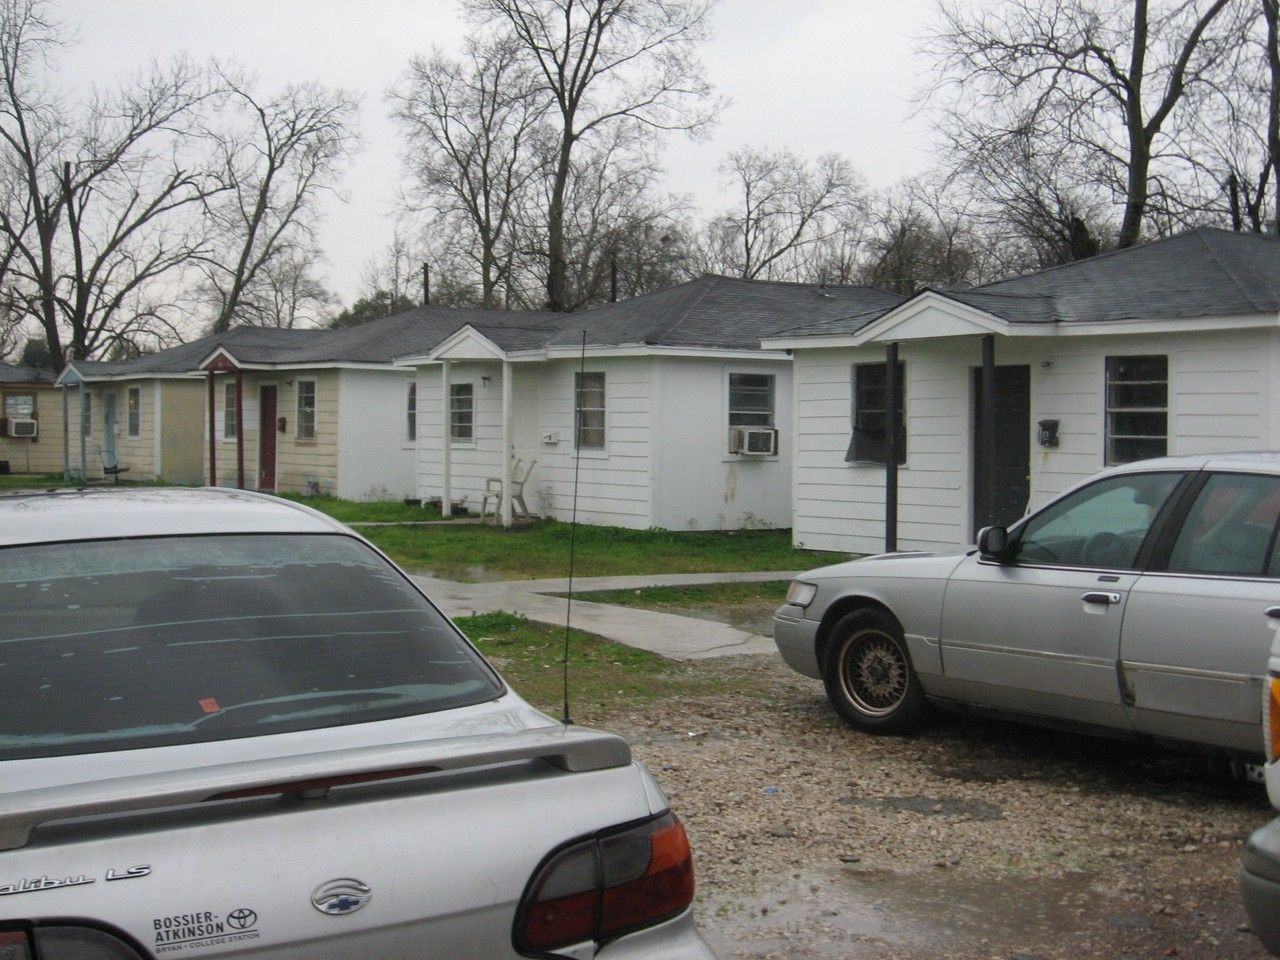 Reed Rd Cullen Blvd Houston Tx 77033 2 Bedroom Apartment For Rent For 725 Month Zumper